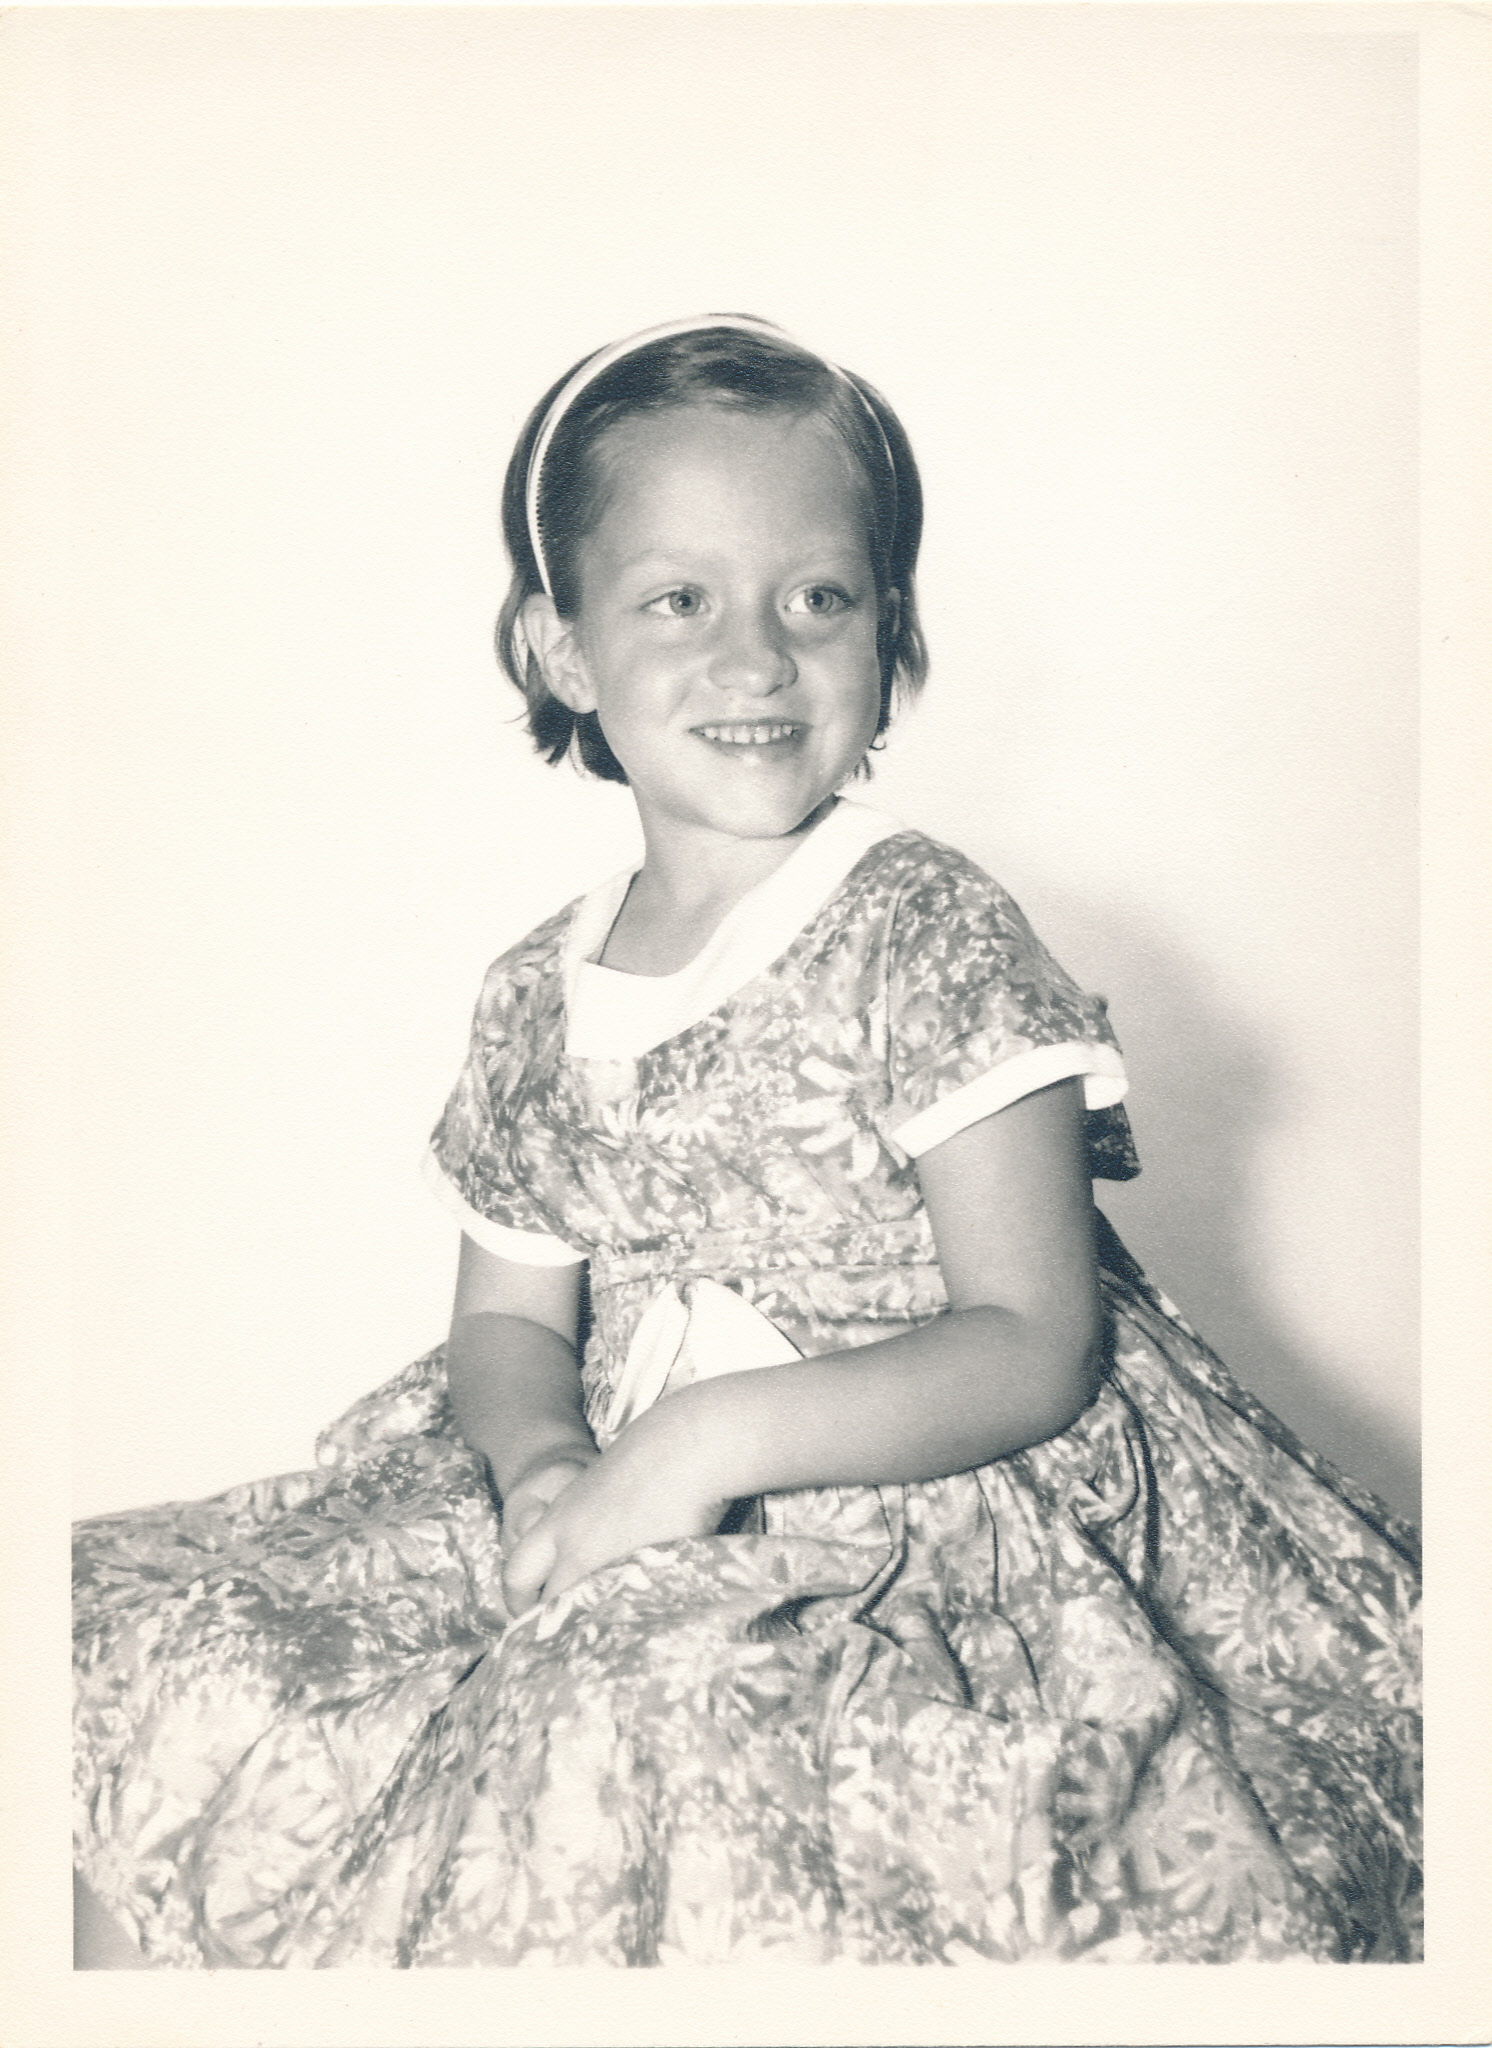 Aunt Betty as a little girl. So incredibly pure and innocent.